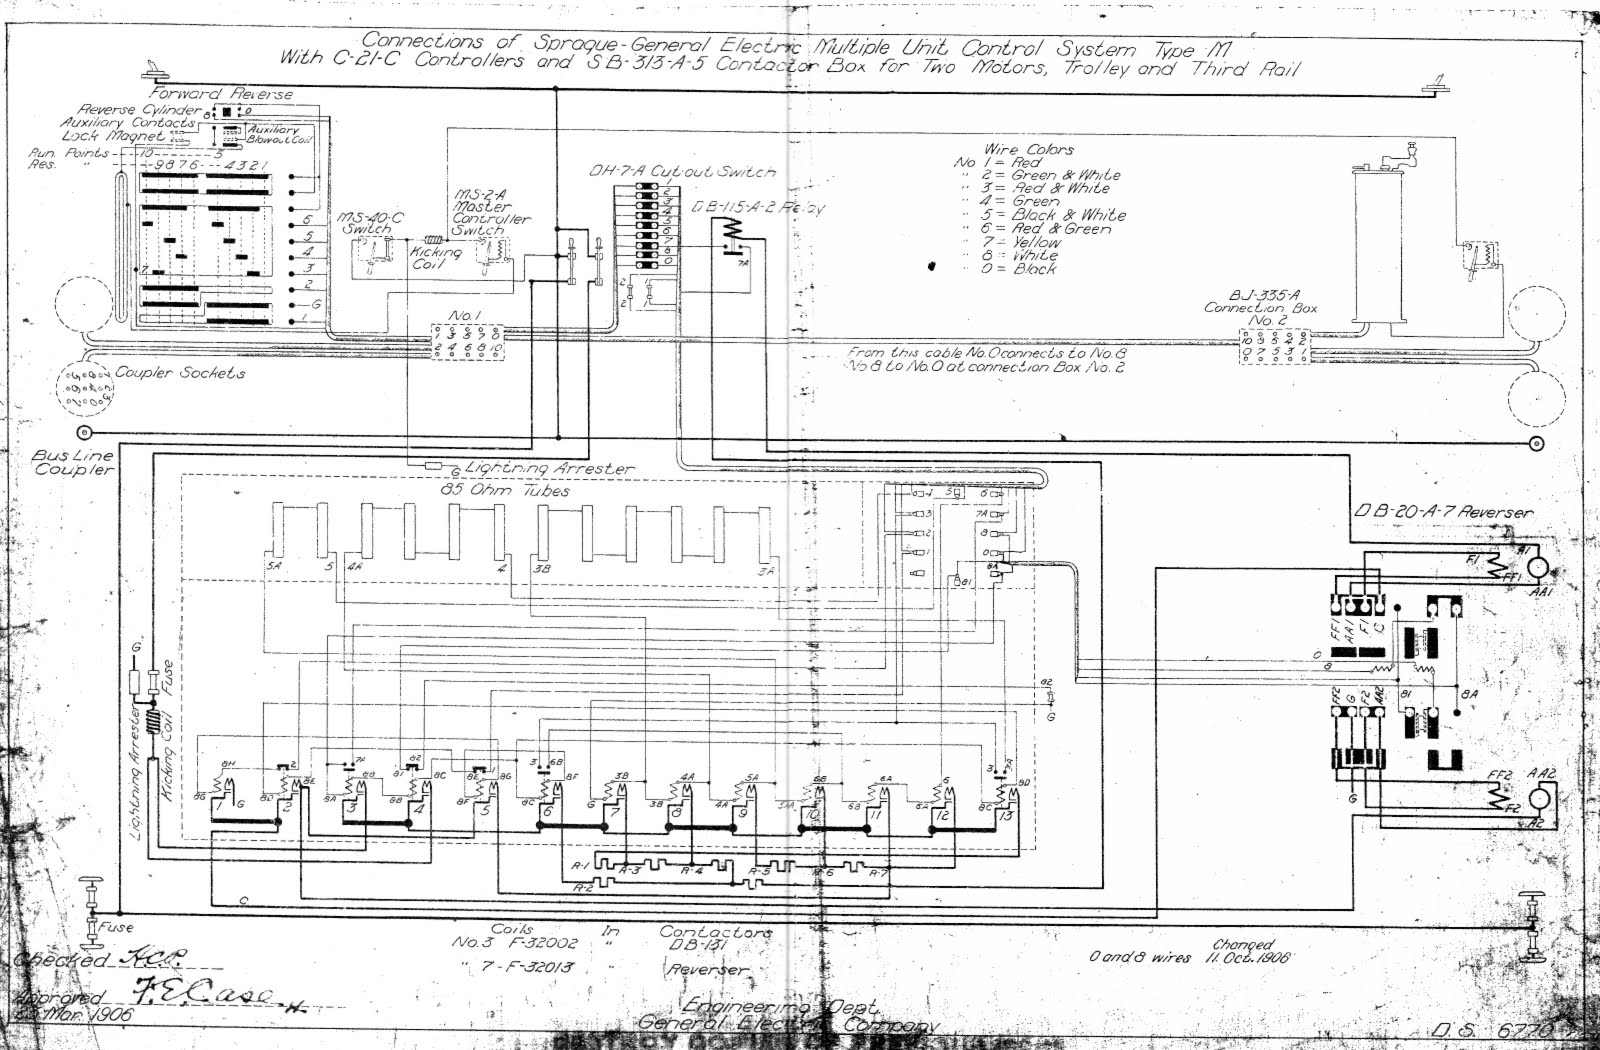 2006 Chevy Impala Ignition Switch Wiring Diagram 2000 Fuse Box